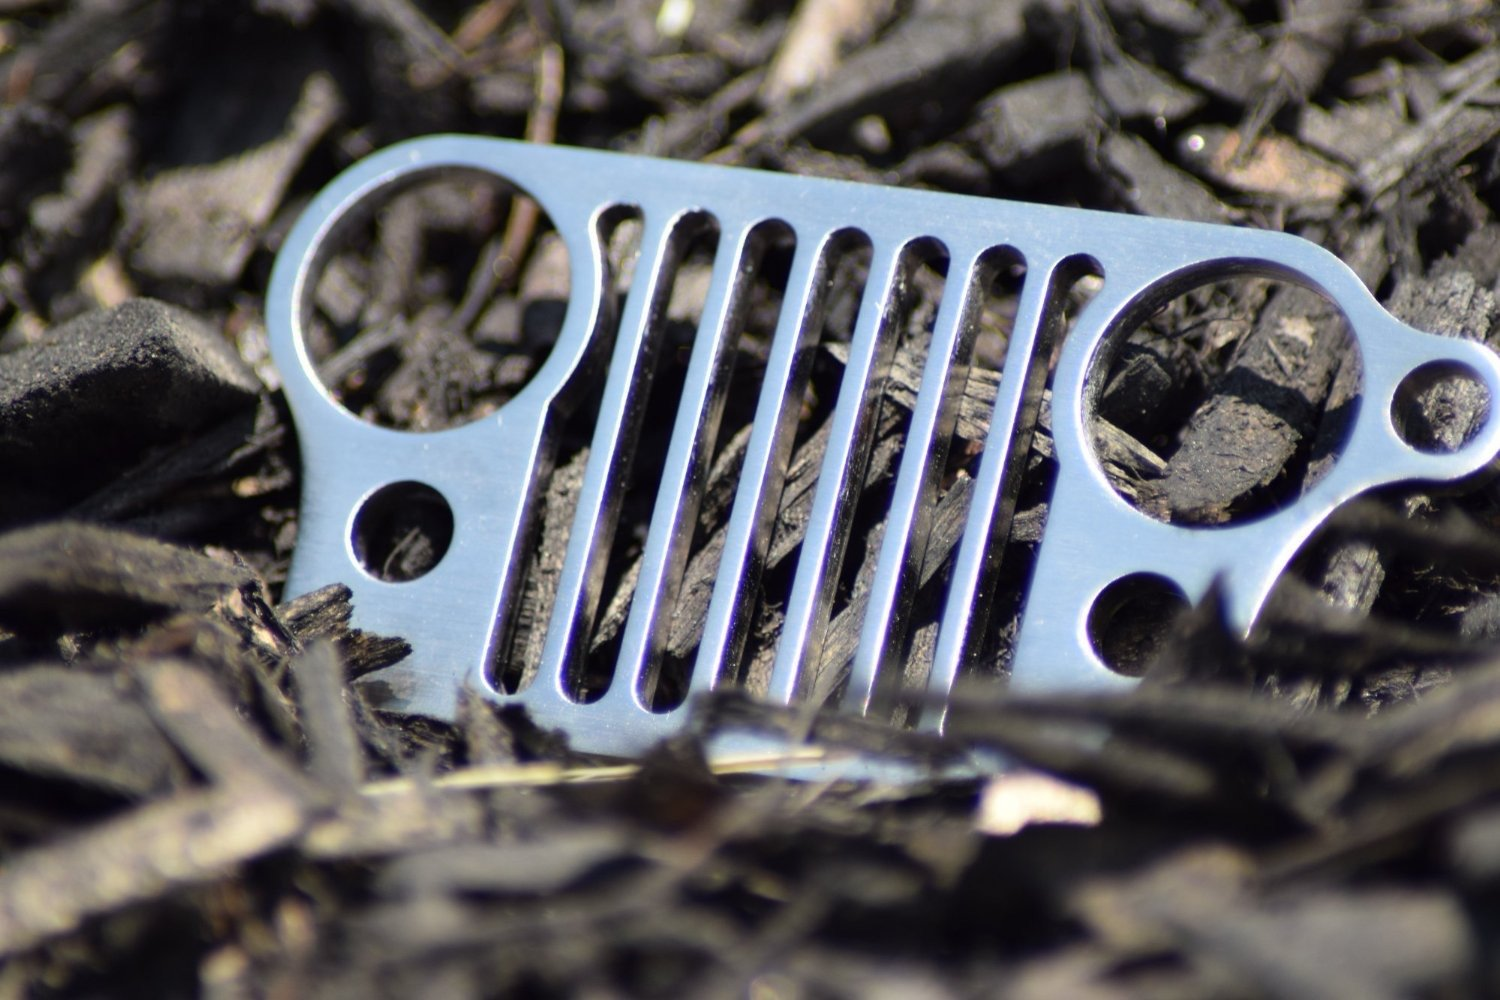 Amazon.com: Boesch Built Stainless Steel Jeep Grill Keychain: Automotive